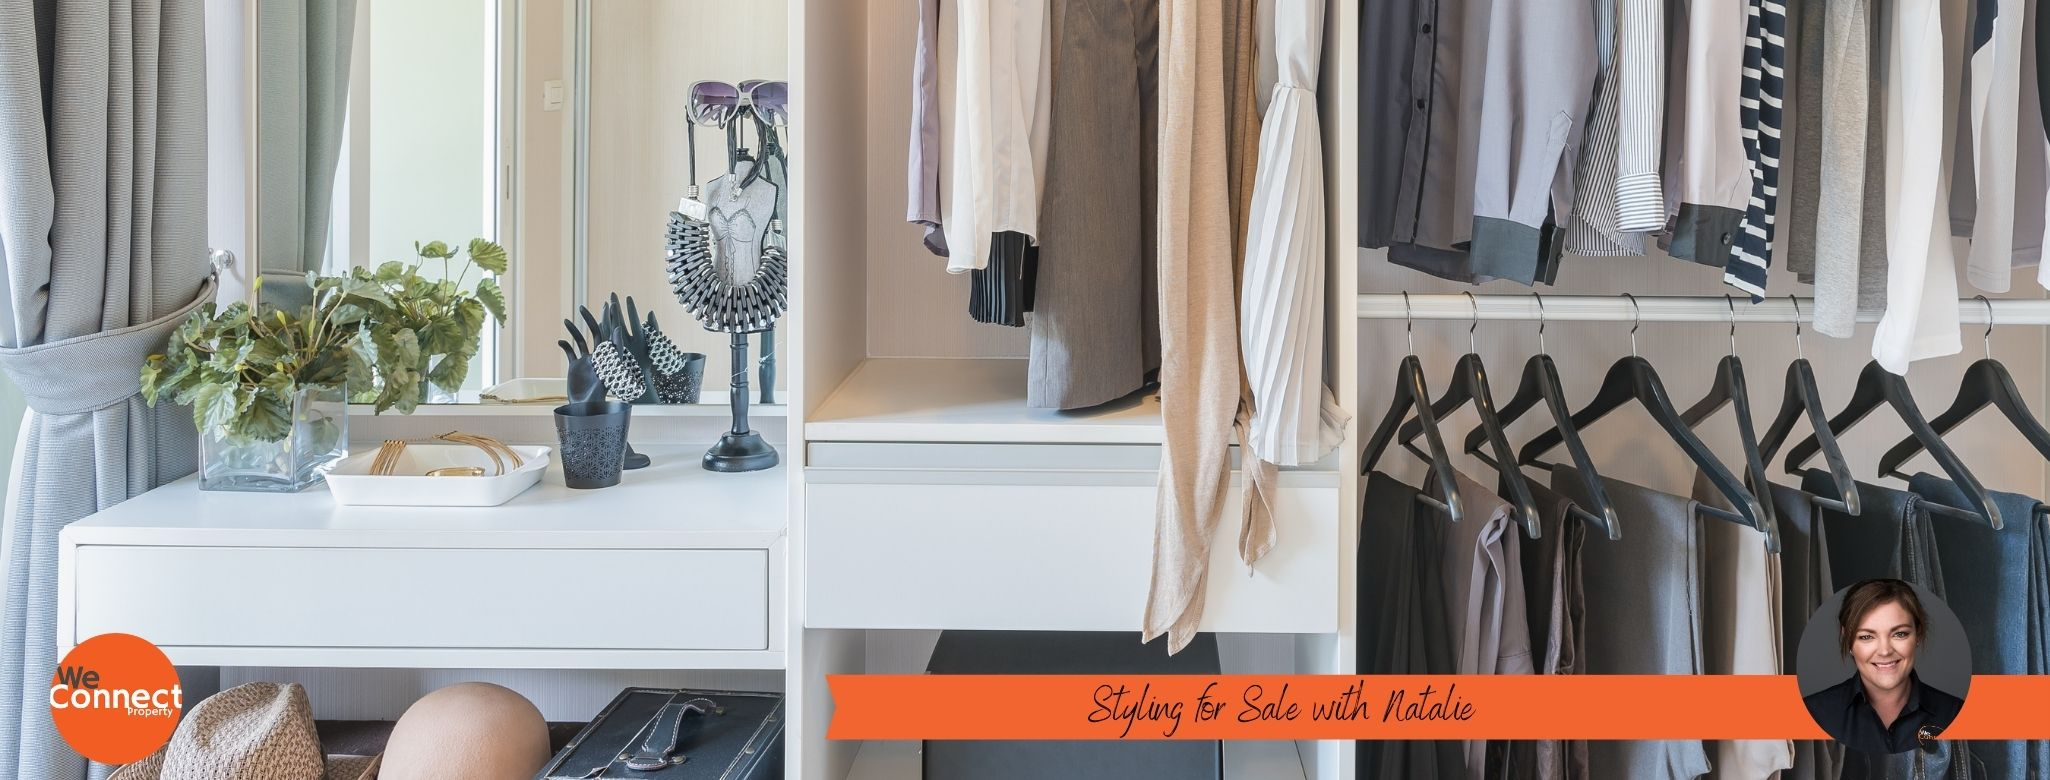 Our 9 Home Styling Tips To Sell